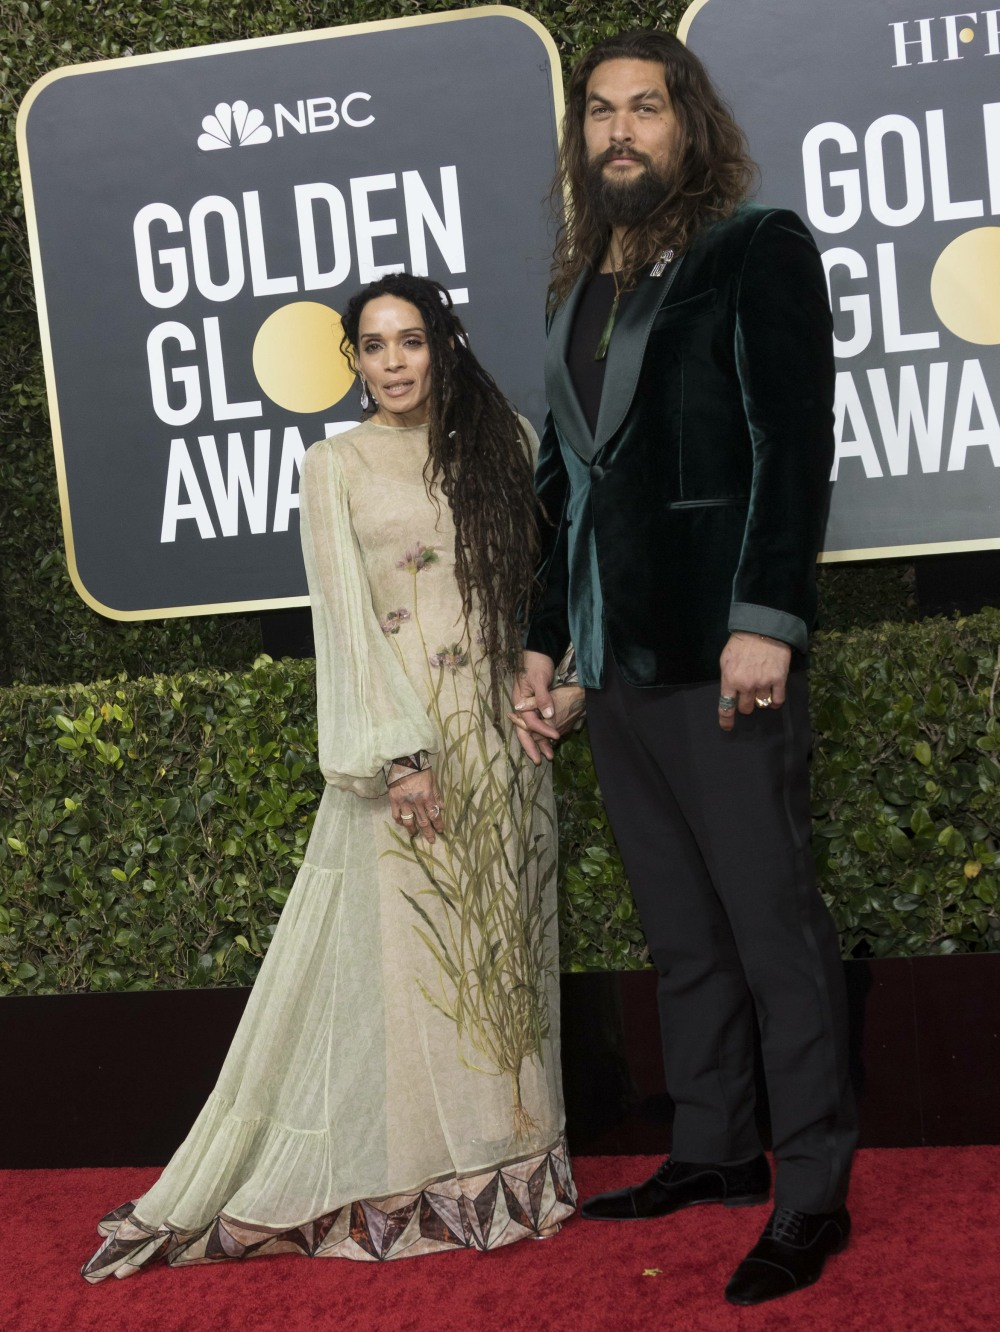 Lisa Bonet and Jason Momoa attend the 77th Annual Golden Globe Awards, Golden Globes, at Hotel Beverly Hilton in Beverly Hills, Los Angeles, USA, on 05 January 2020. | usage worldwide